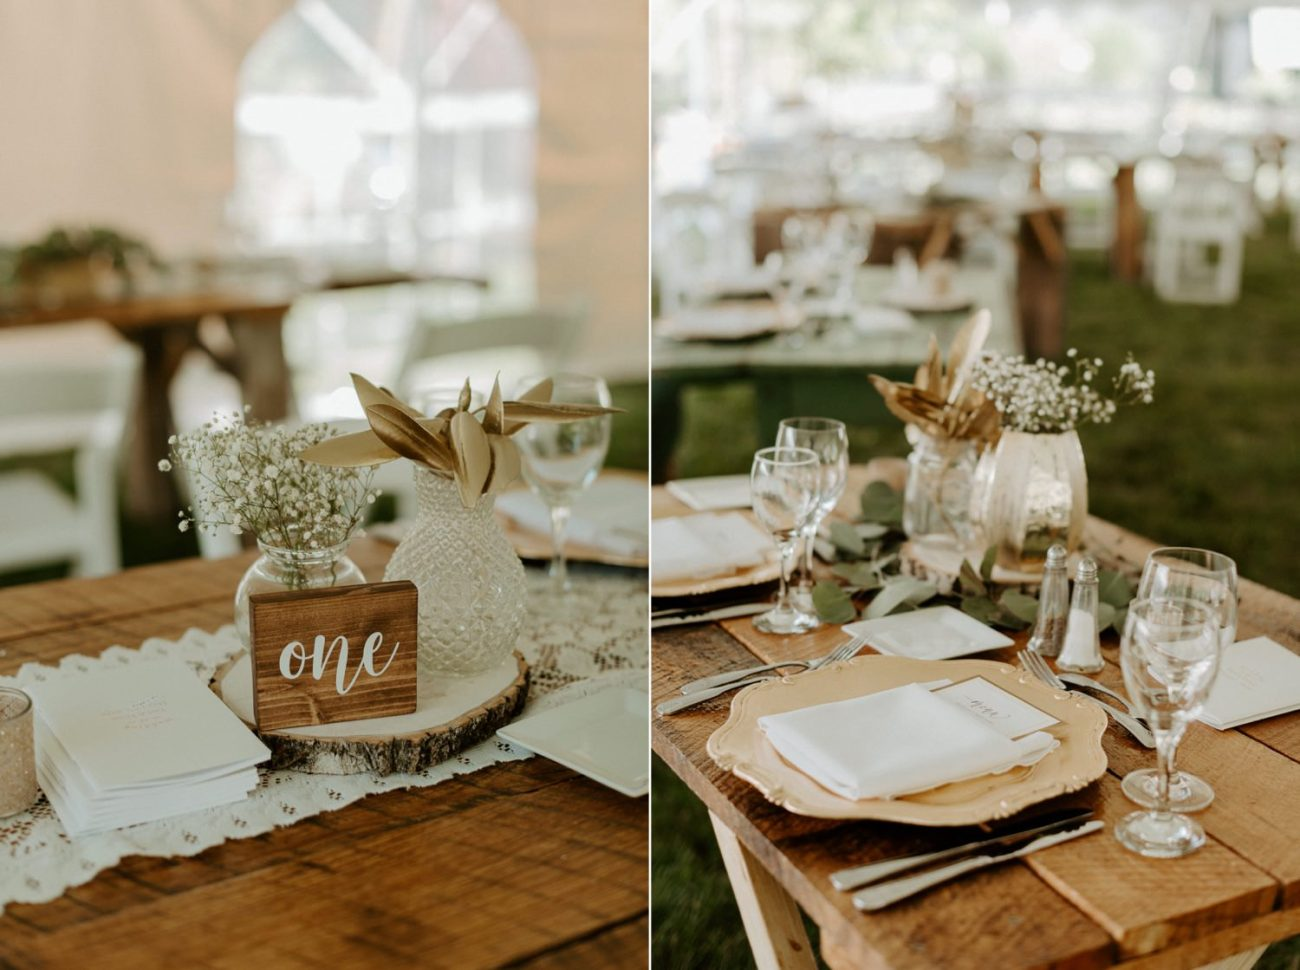 Jacks Barn Oxford New Jersey Wedding New Jersey Wedding Photographer NJ Wedding Venue Rustic Barn Wedding Anais Possamai Photography 053